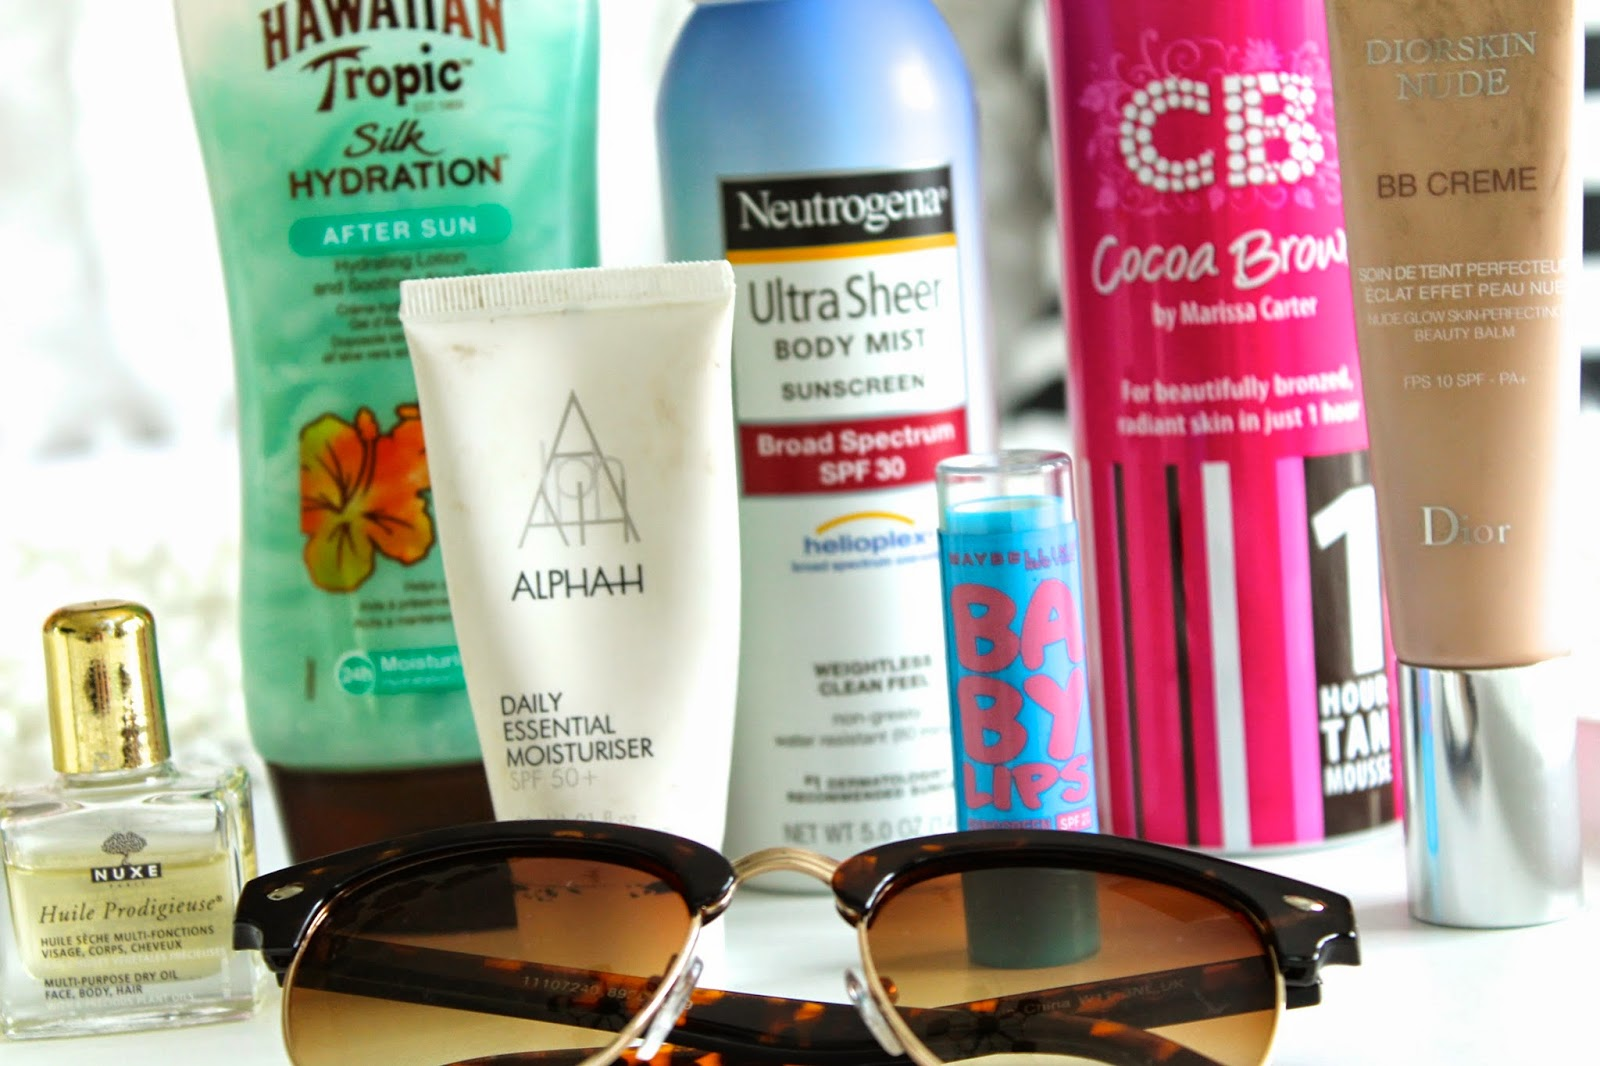 Neutrogena Ulta Sheer Sunscreen